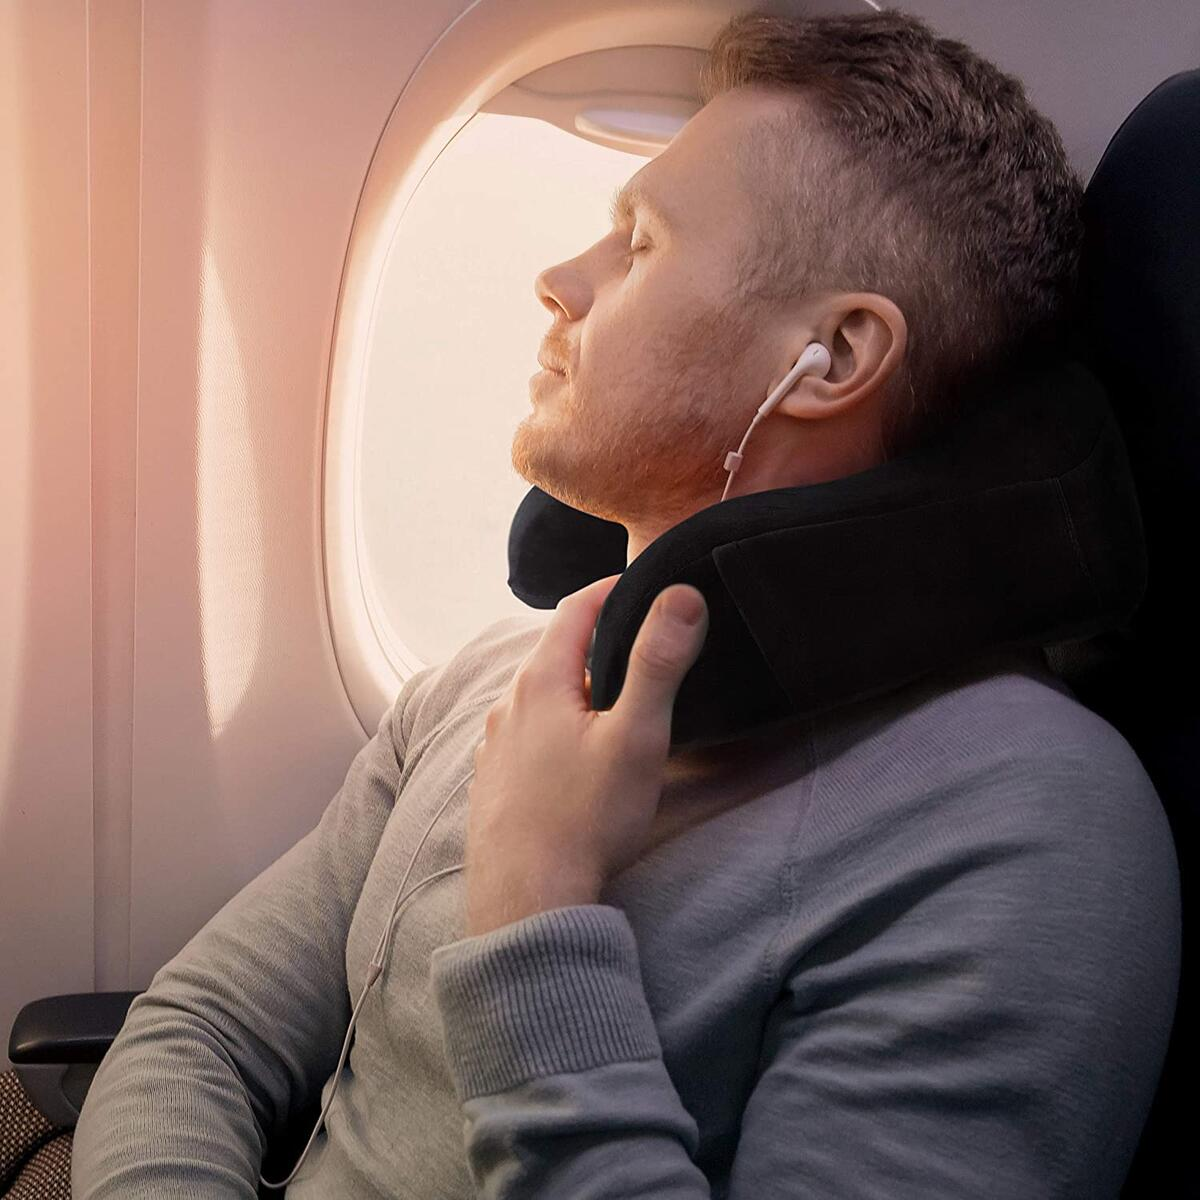 Sierra Concepts Travel Pillow - 100% Pure Memory Foam Neck Pillows for Airplane, Traveling, Car, Sleeping, Home - Velour Fabric with Side Pocket, ST100 Series Black